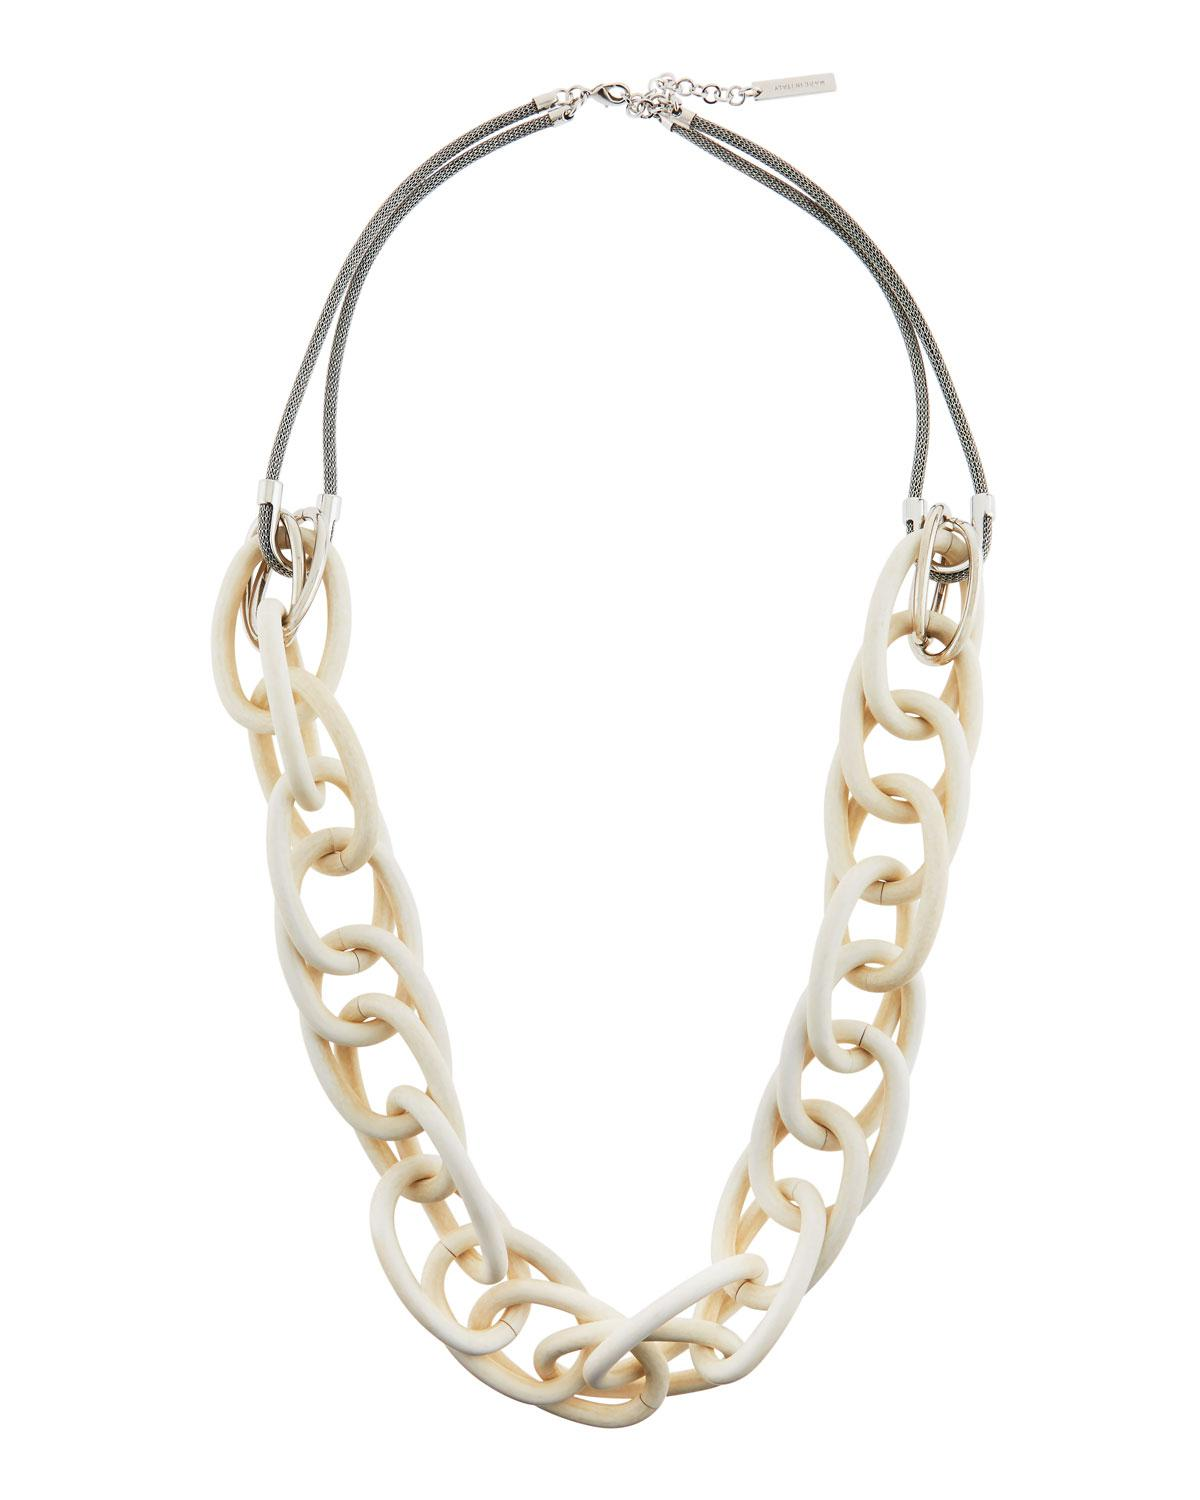 Lafayette 148 New York Long Twisted-Link Necklace, 35